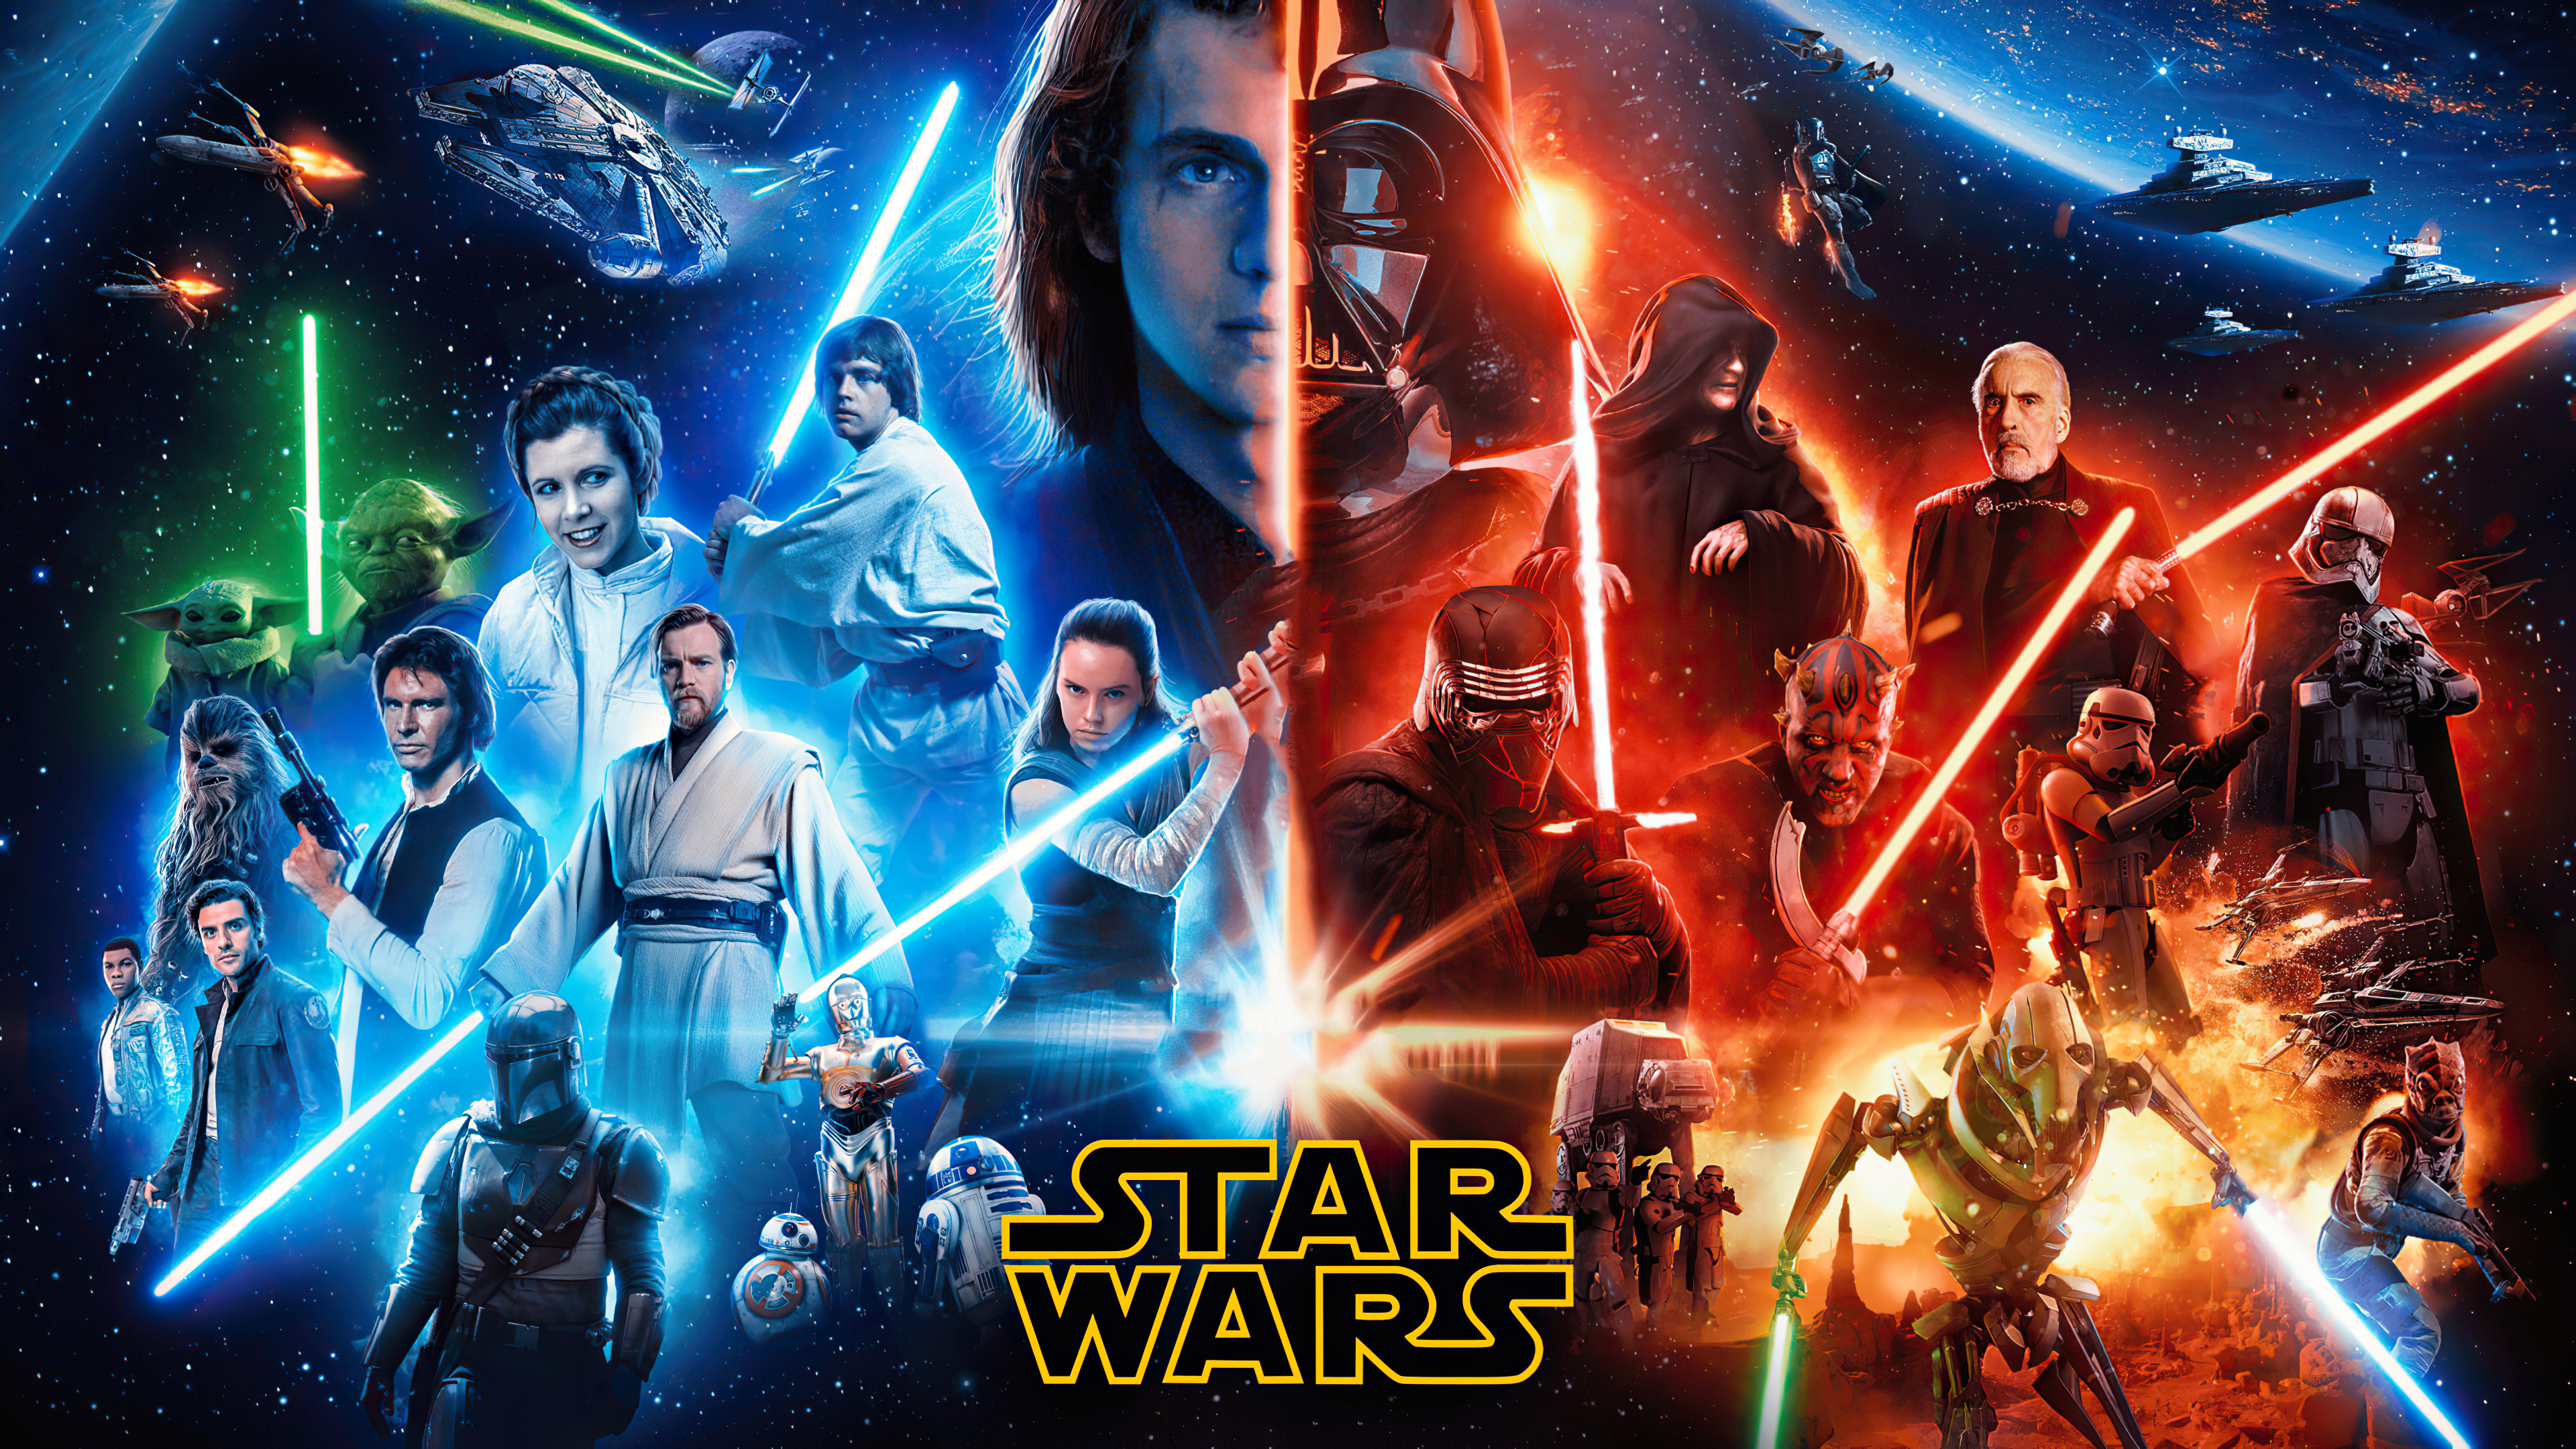 Star Wars 4th May Hd Movies 4k Wallpapers Images Backgrounds Photos And Pictures